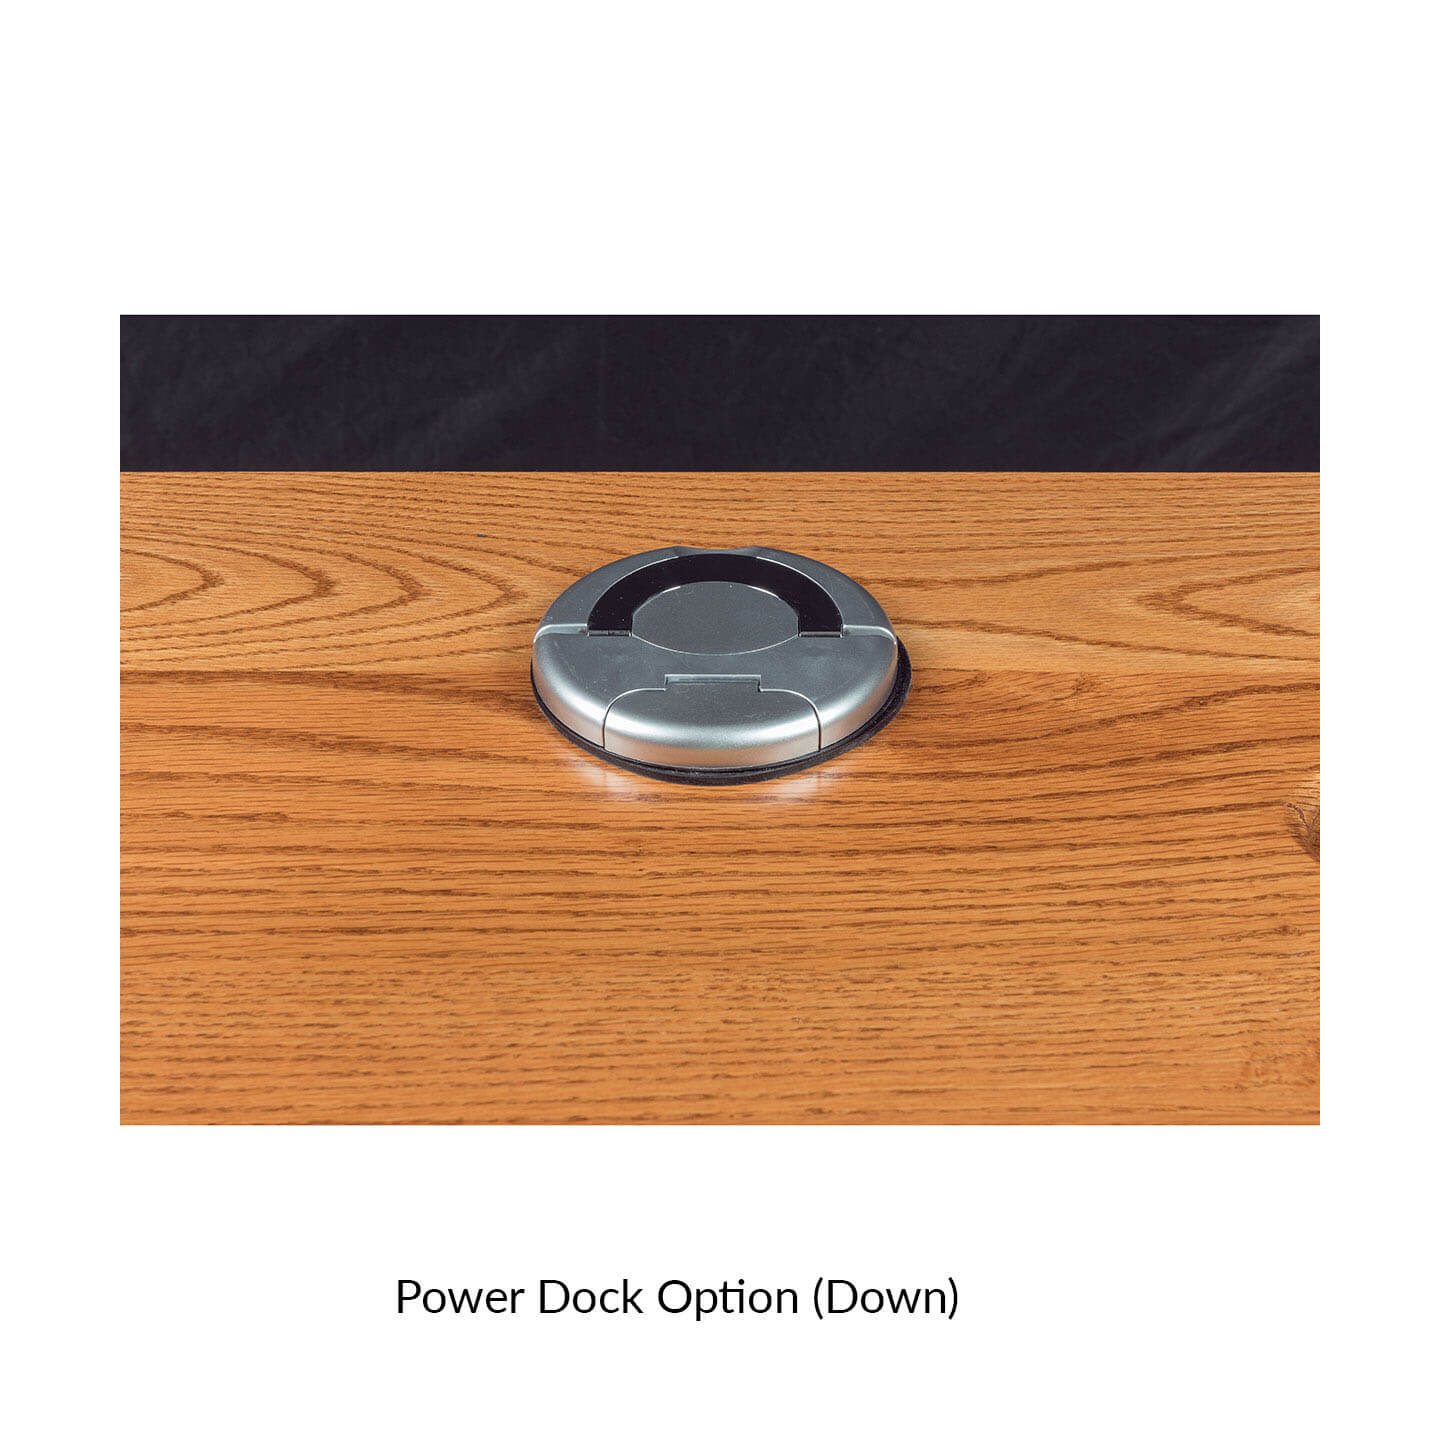 5.0-power-dock-option-down-.jpg